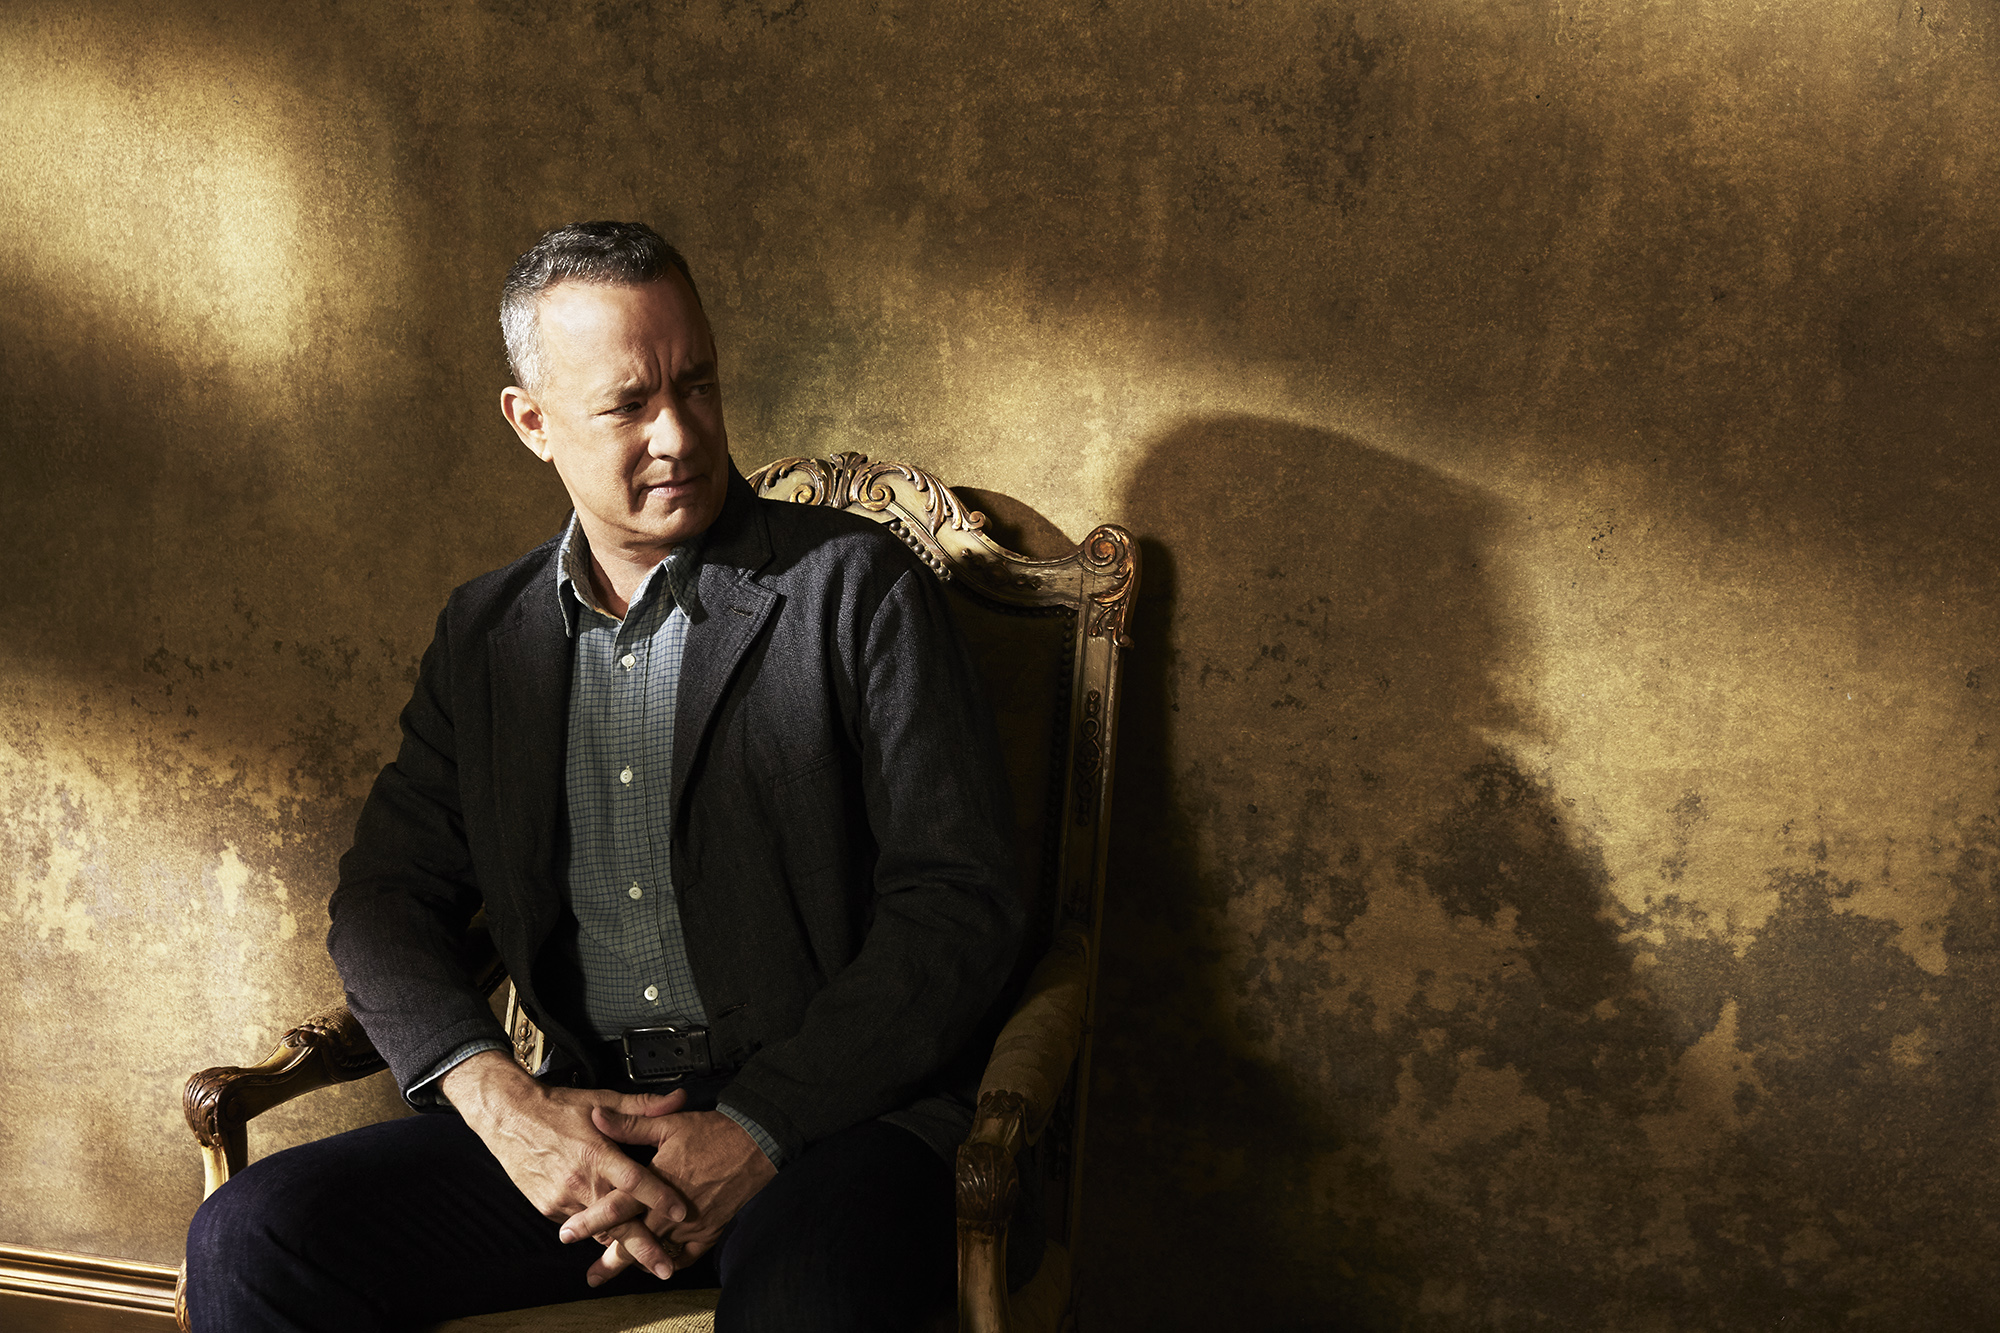 Tom-Hanks-by-Robert-ascroft